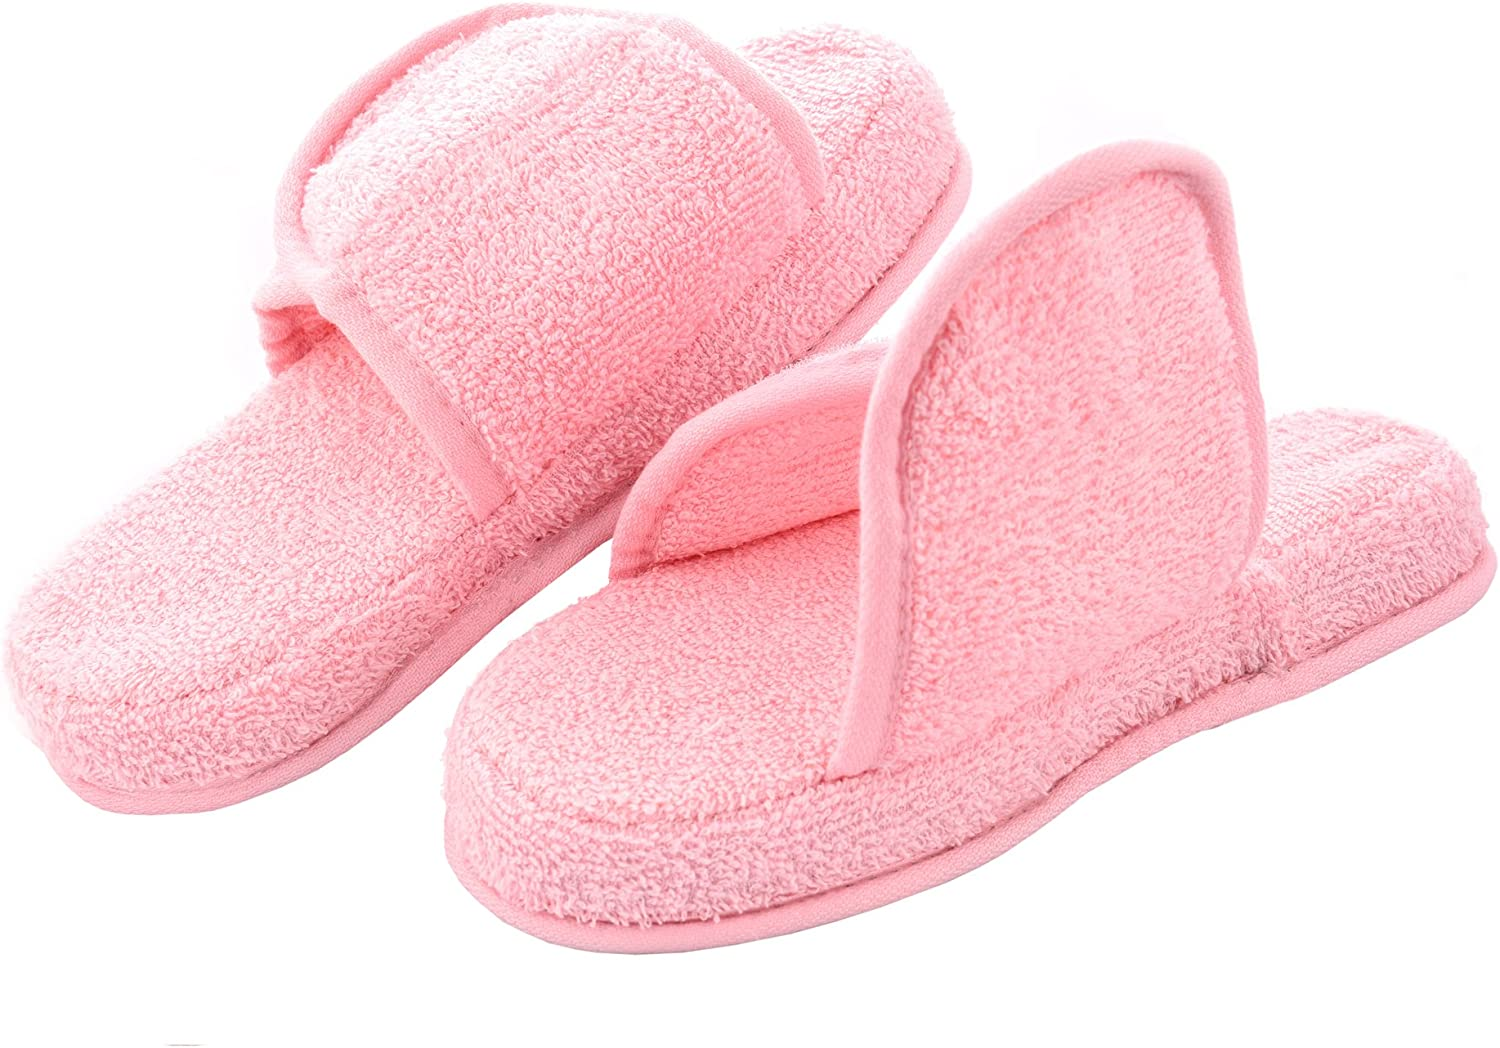 Men's and Women's Cozy Memory Foam Soft Premium 100% Turkish Terry Cotton Cloth Open Toe Spa Slide House Indoor Slippers